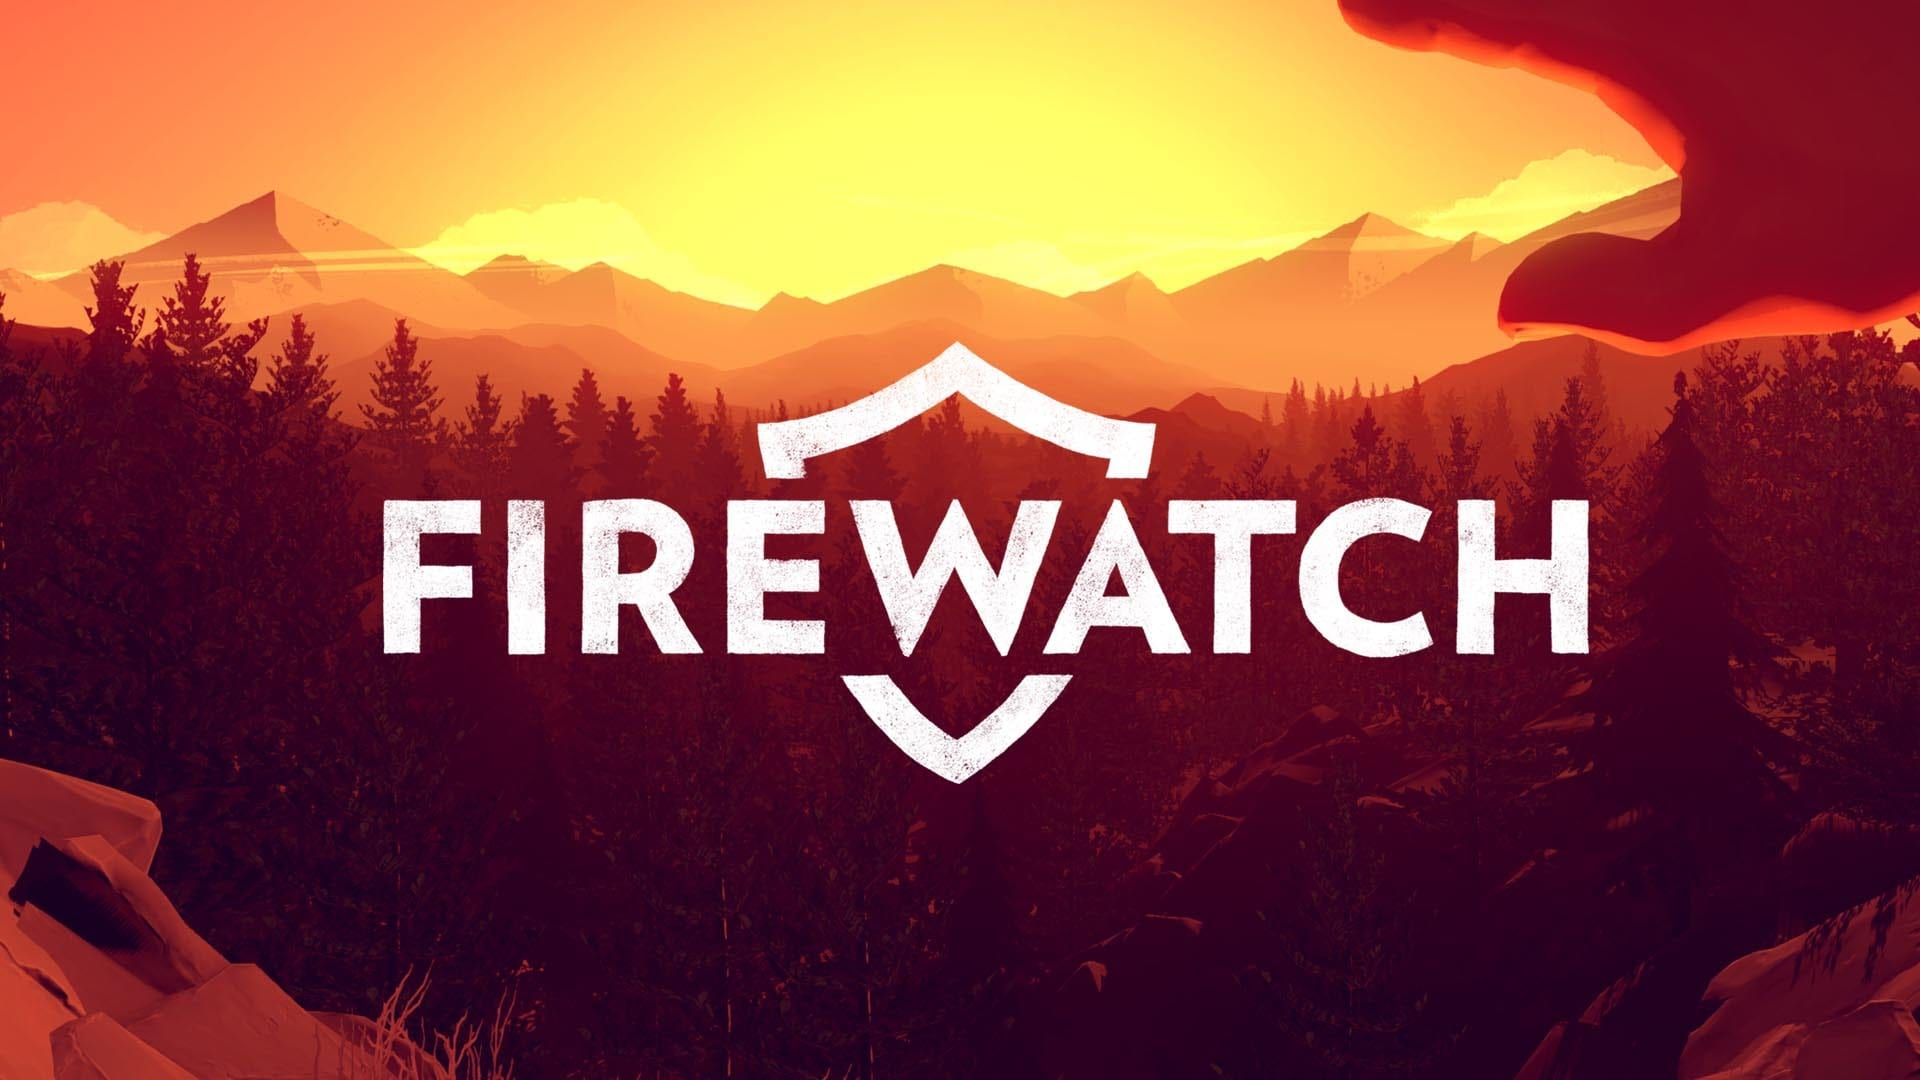 Firewatch's Xbox One release delayed in Europe, New Zealand, and Australia